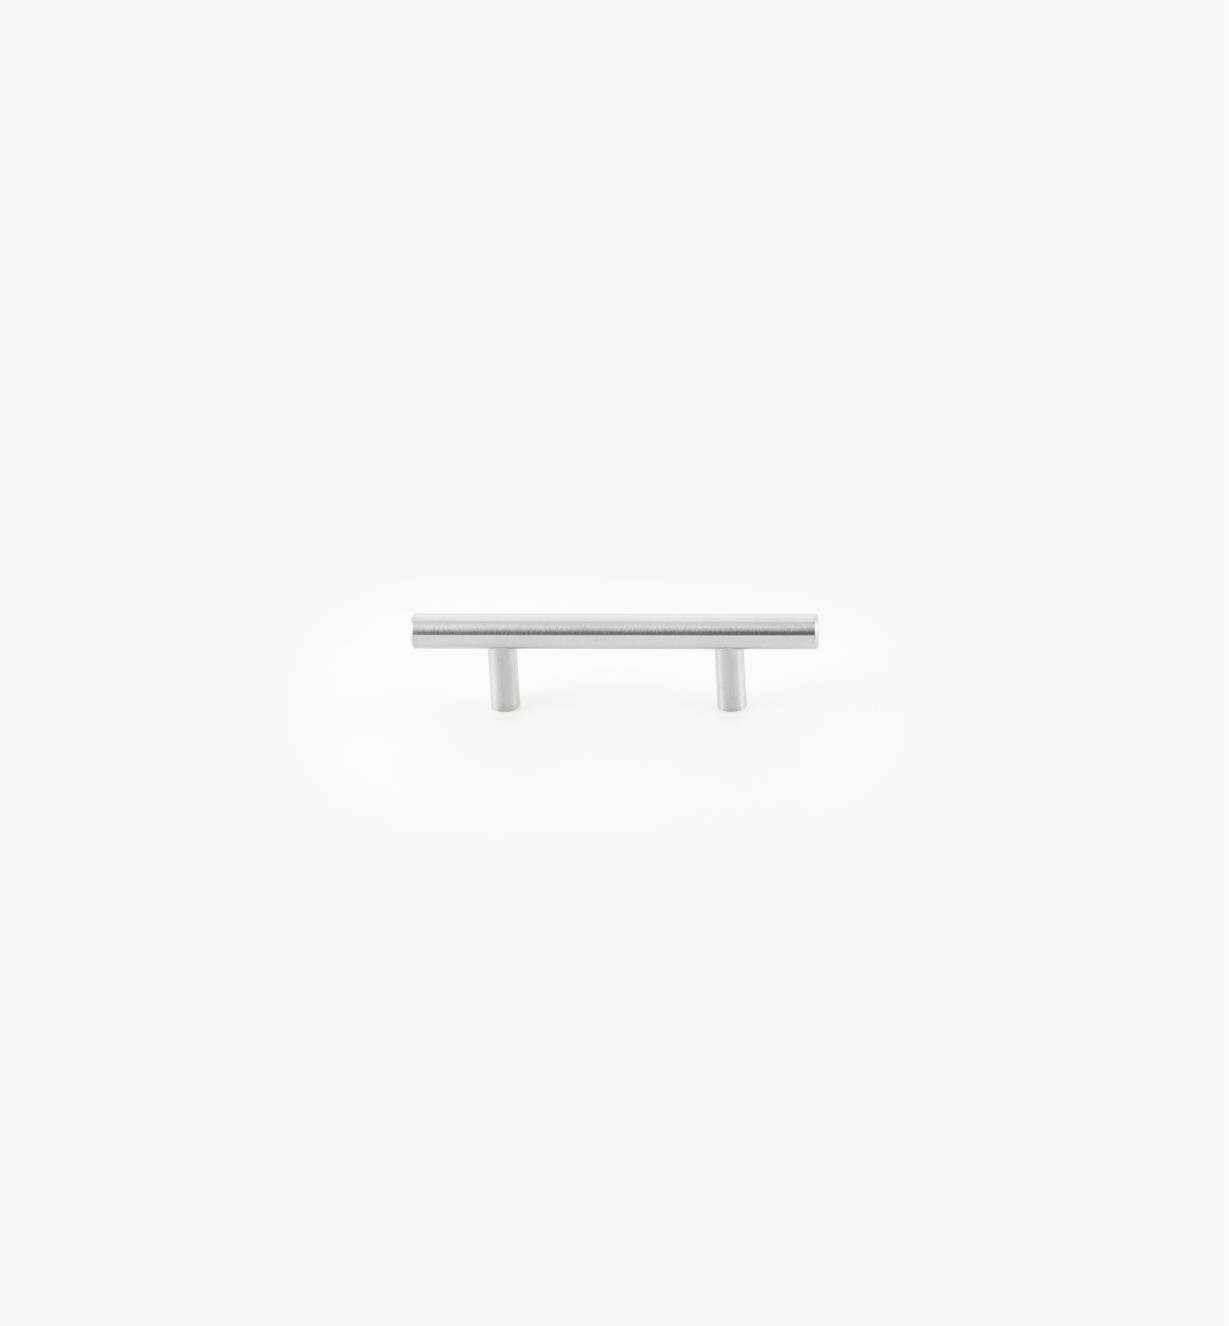 02A1470 - Bar Stainless Steel 76mm (137mm) Pull, each